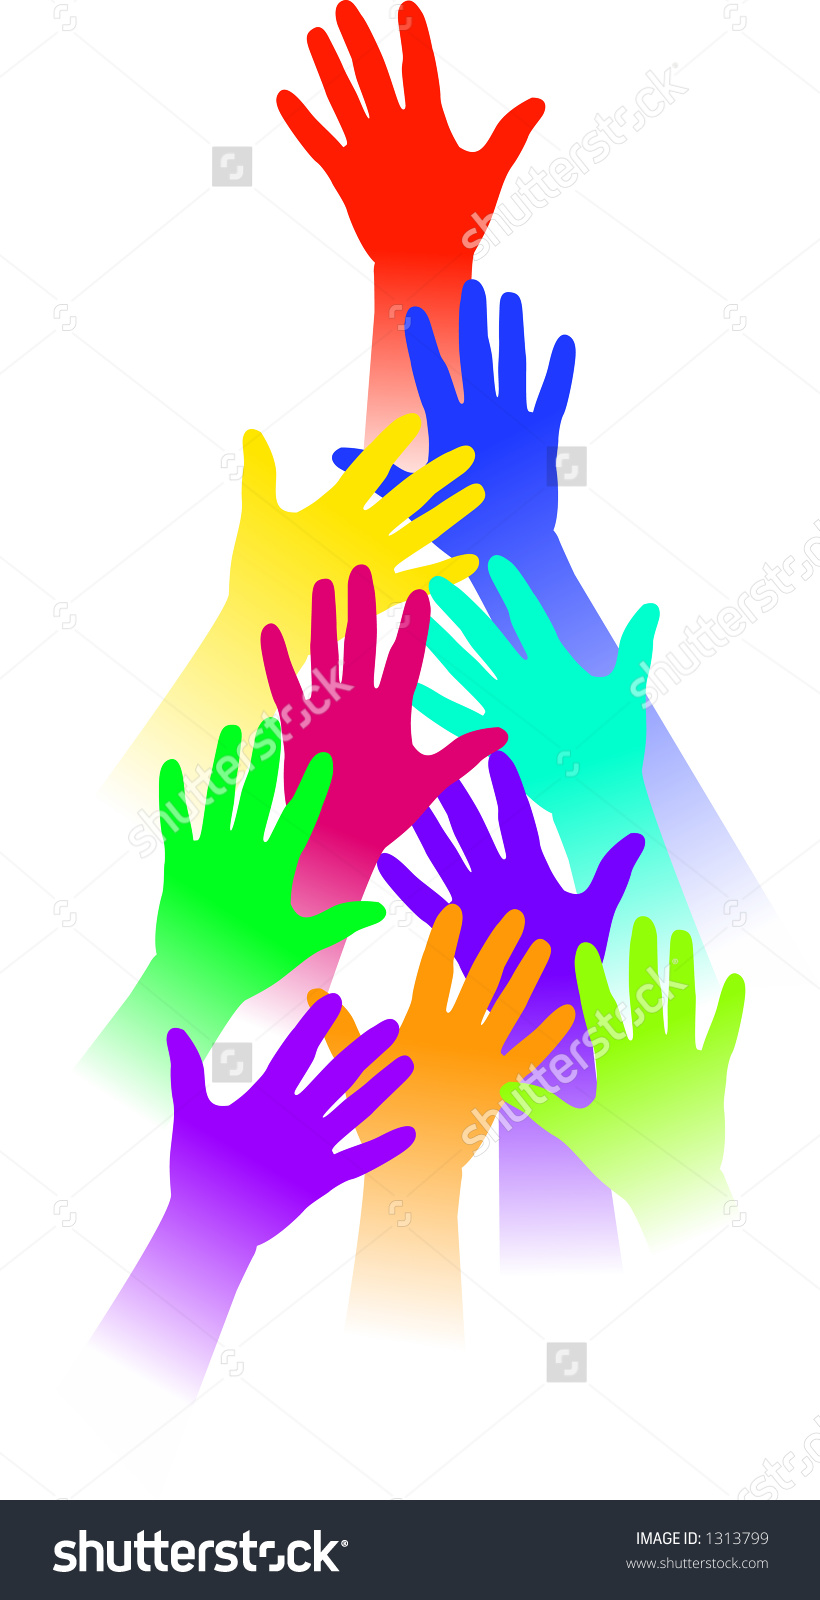 Vector Silhouette Graphic Depicting Reaching Hands Stock Vector.